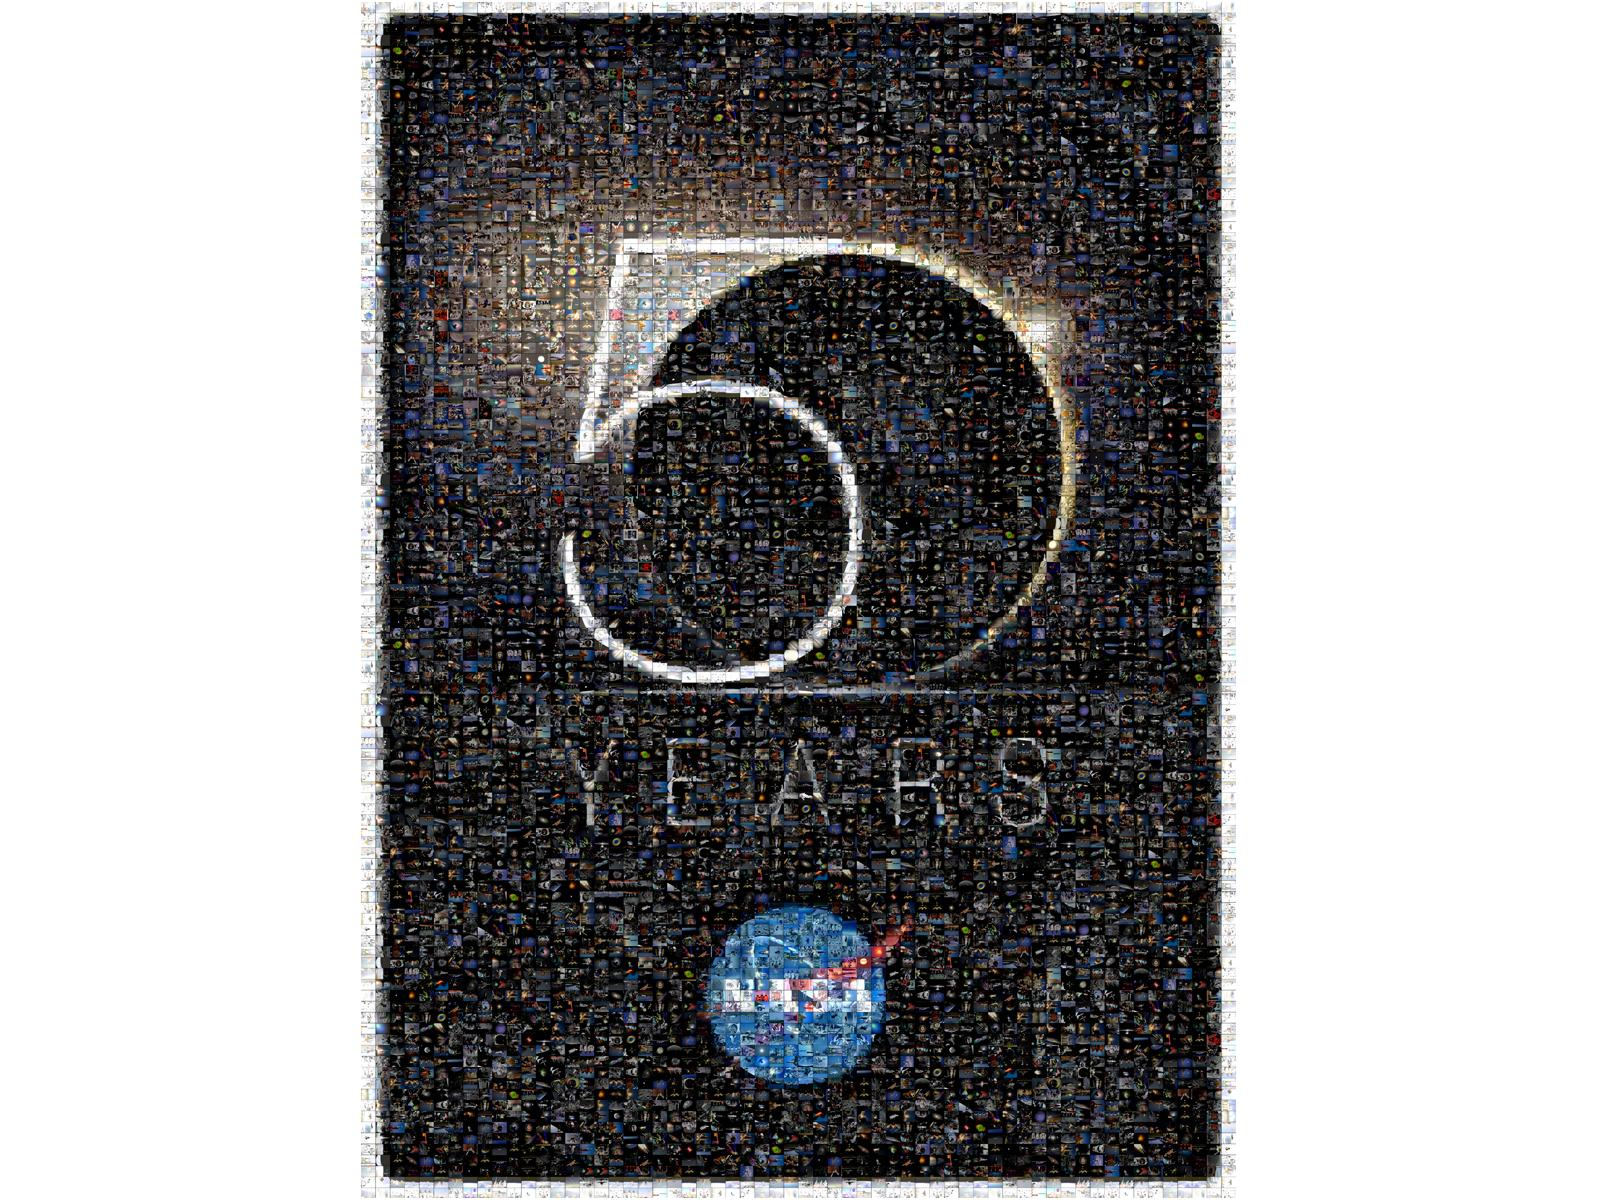 NASA Happy Birthday Wish (page 2) - Pics about space